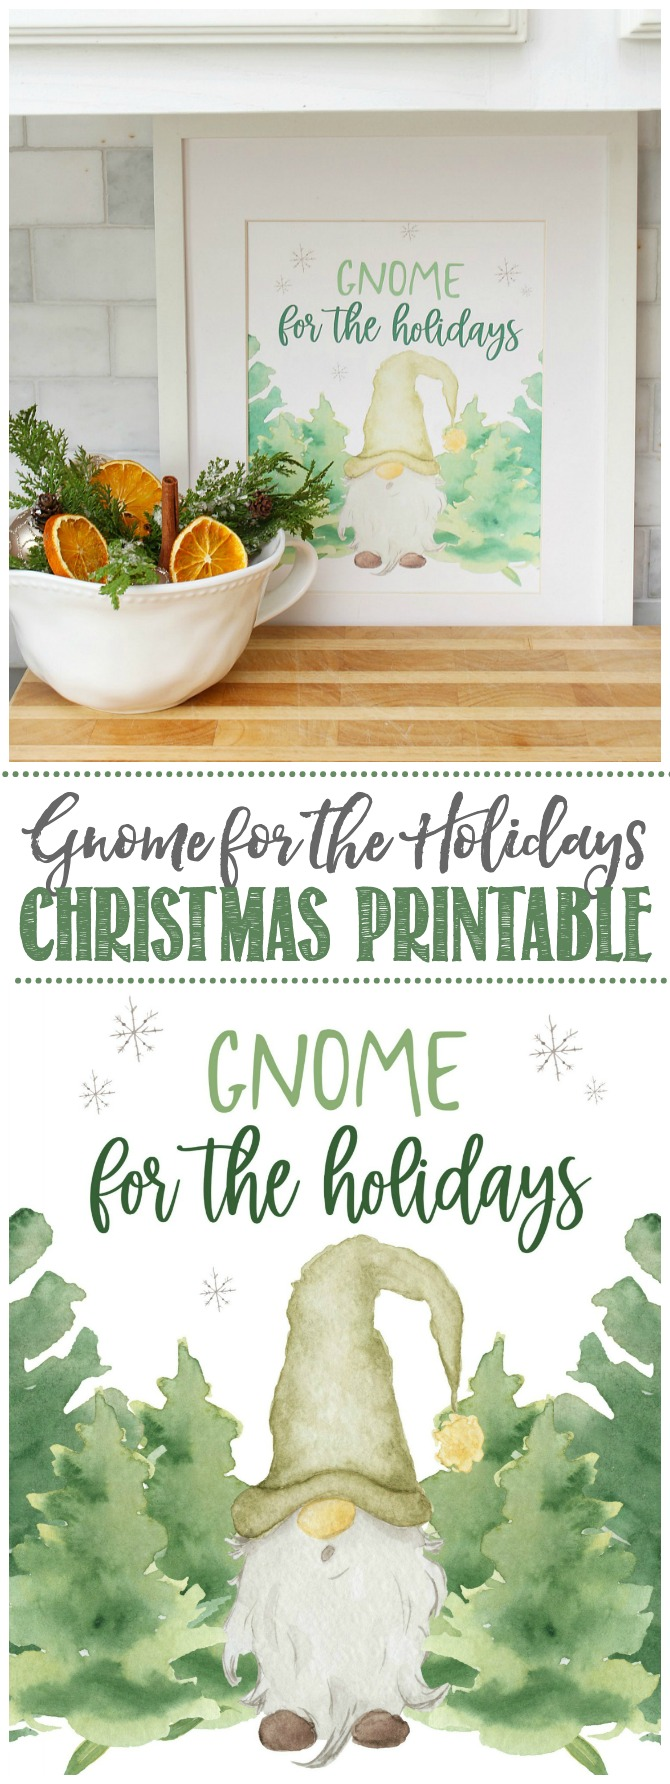 Gnome for the Holidays cute Christmas printable.